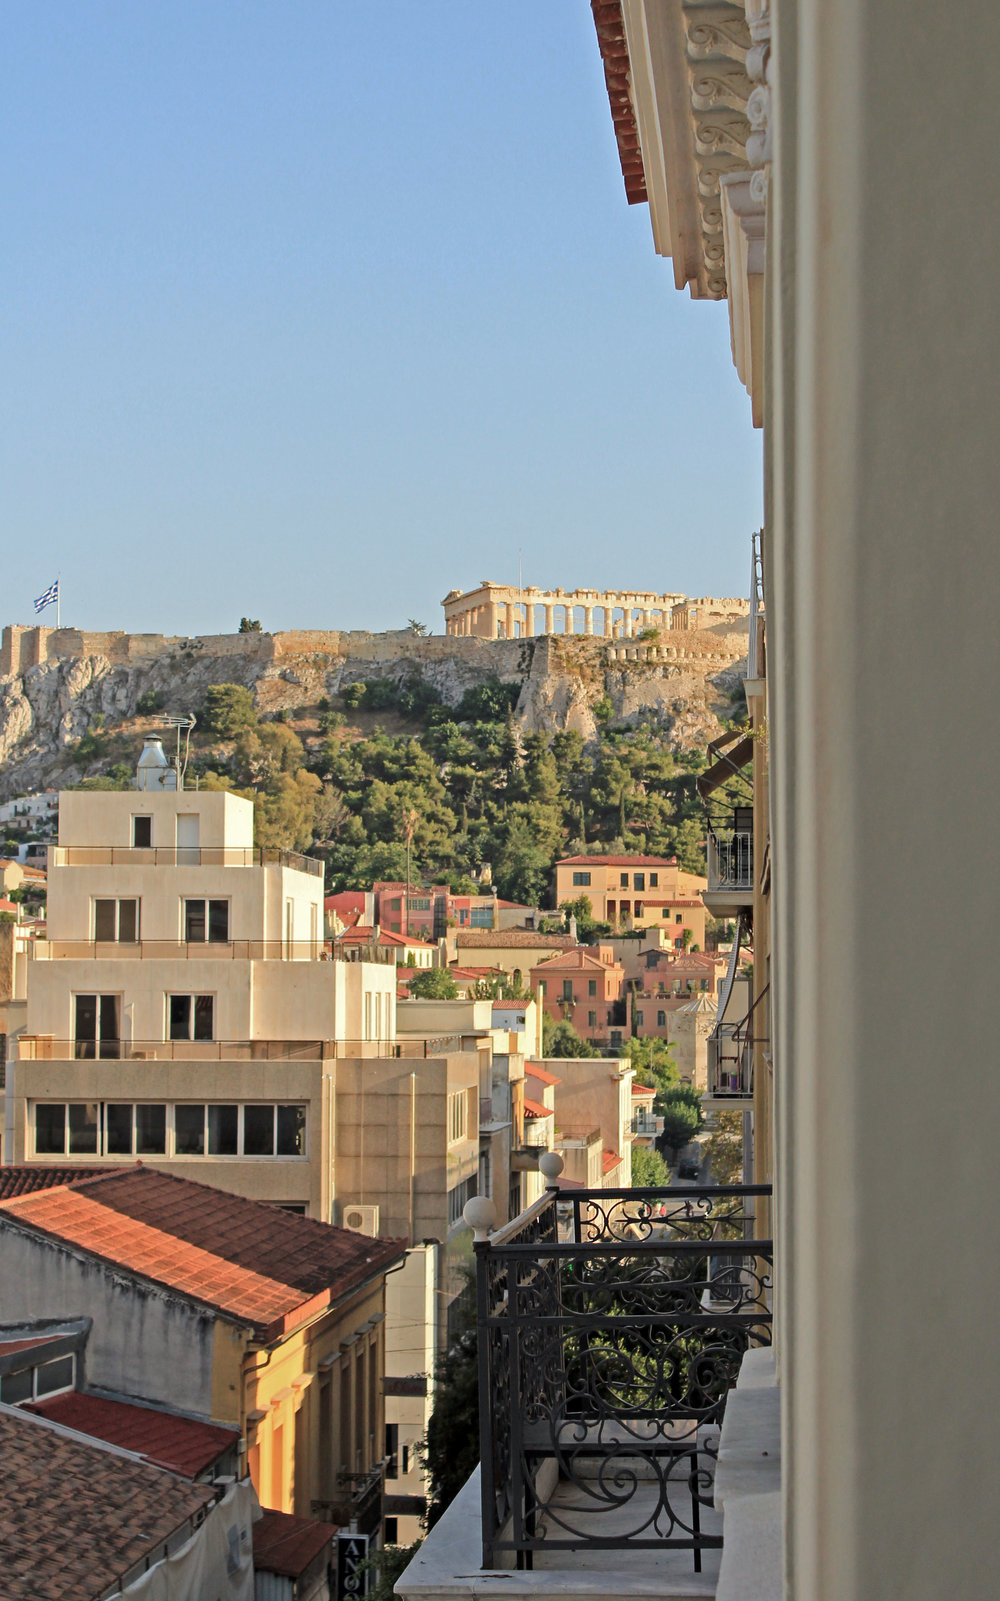 Emporikon Hotel Athens // Eclectic Prodigy //  8 Nights in Greece // Where to Stay, Visit and Eat